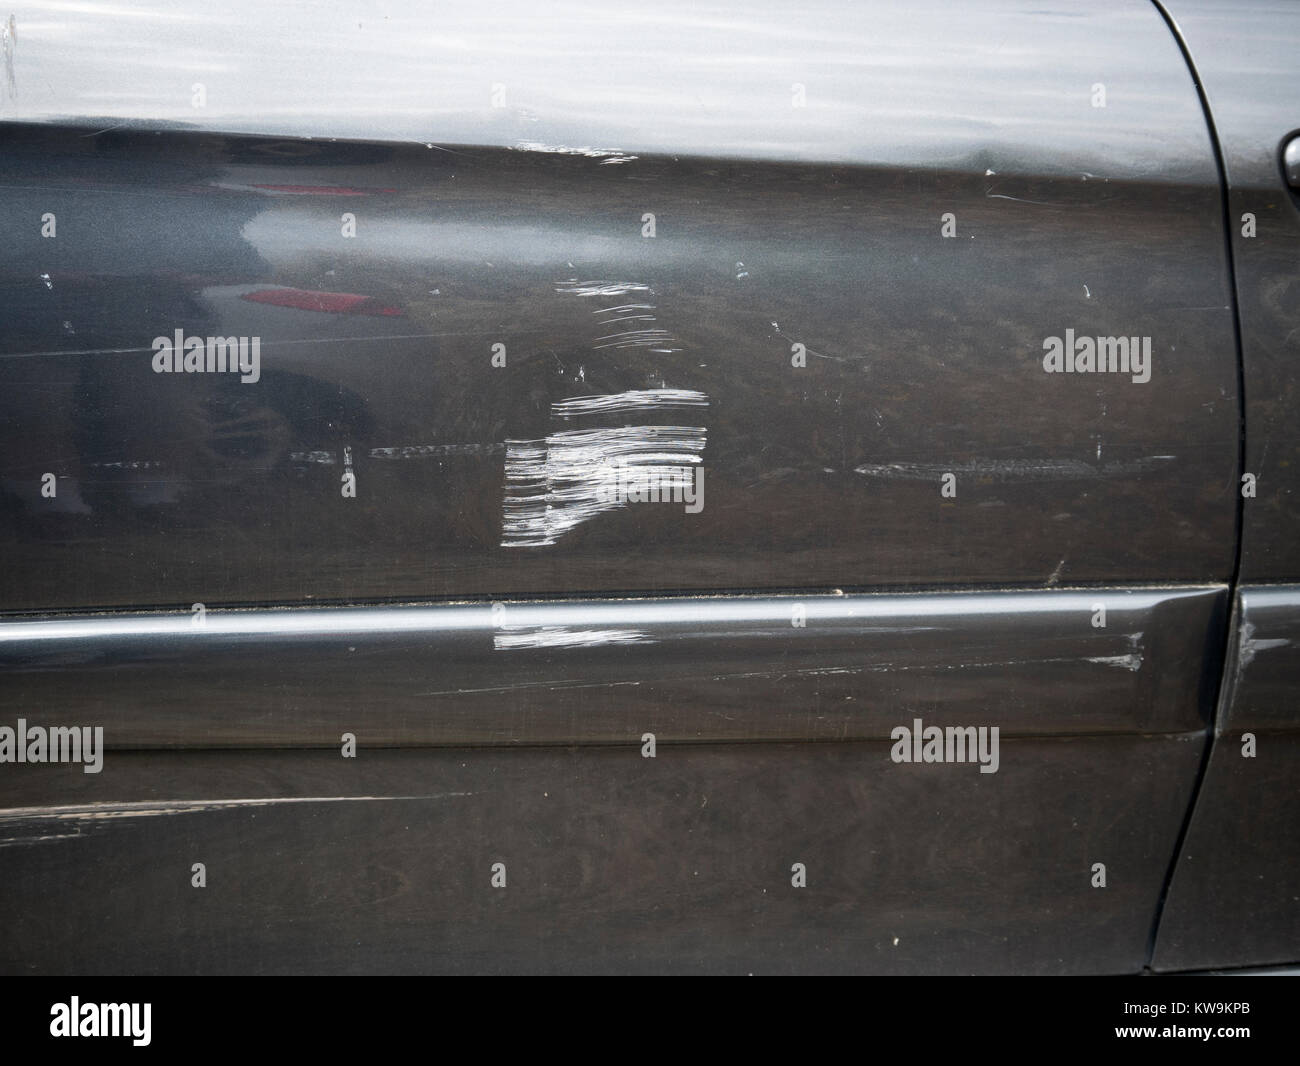 Scratches on the rear wing of a black car - Stock Image